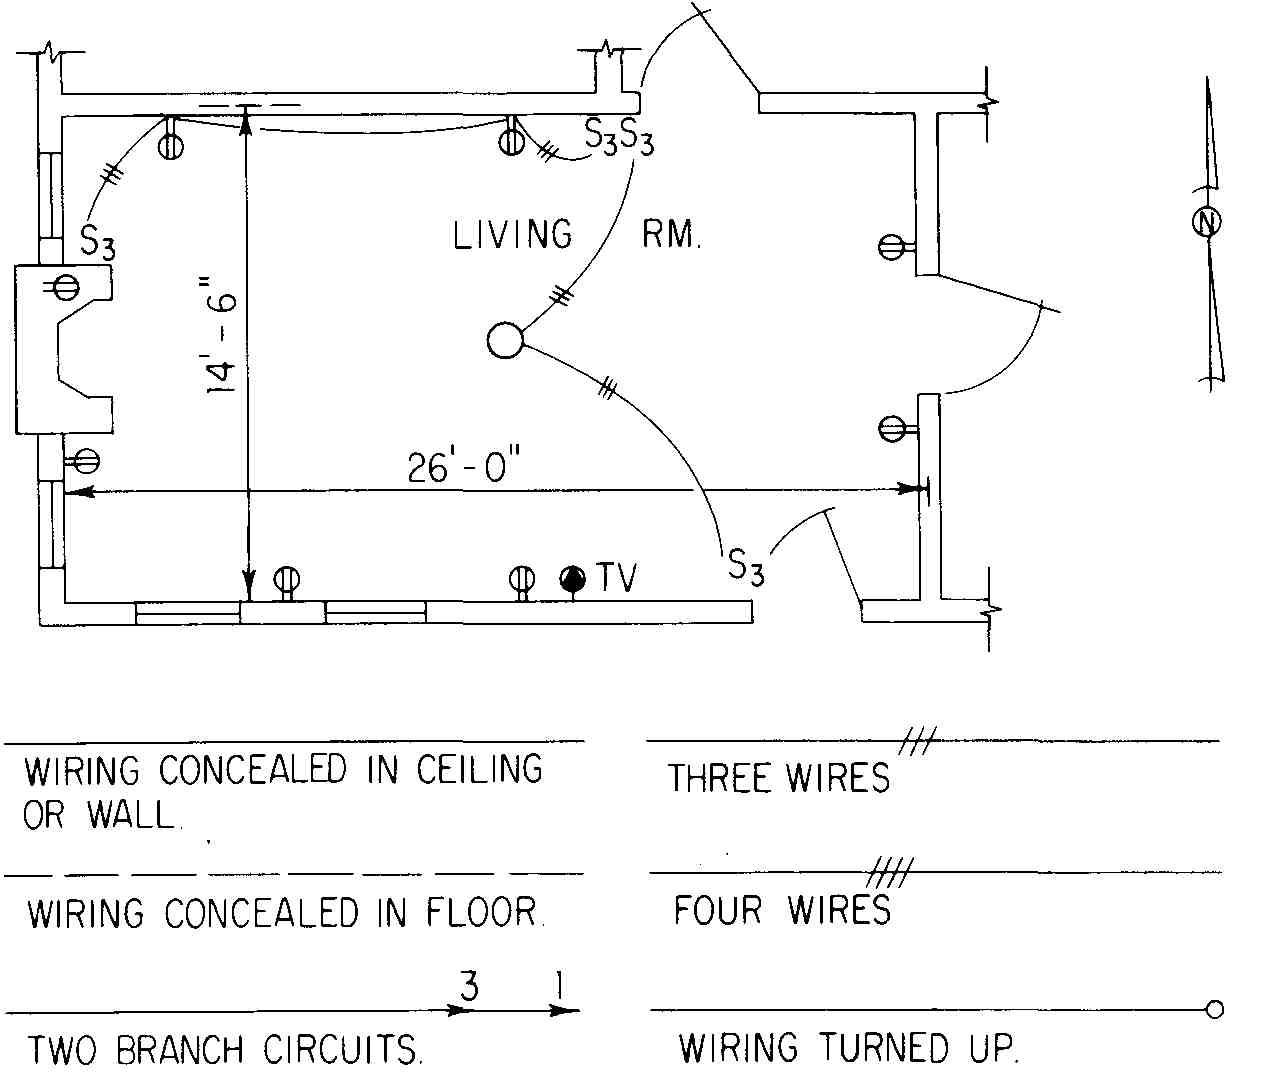 Electrical Drawing For Architectural Plans Fuse Panel Diagram Of Pole 3